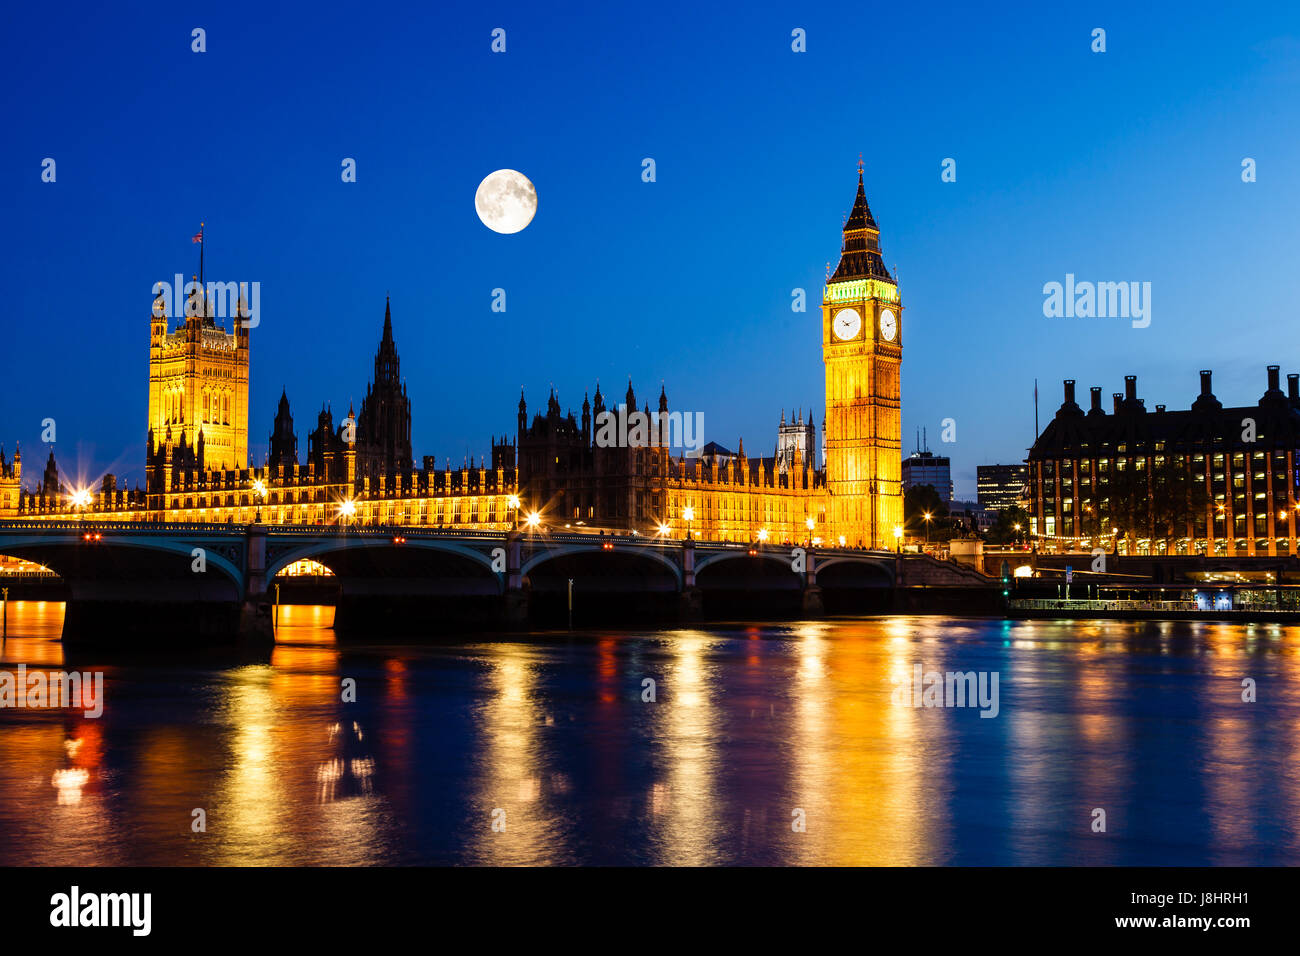 Full Moon above Big Ben and House of Parliament, London, United Kingdom - Stock Image